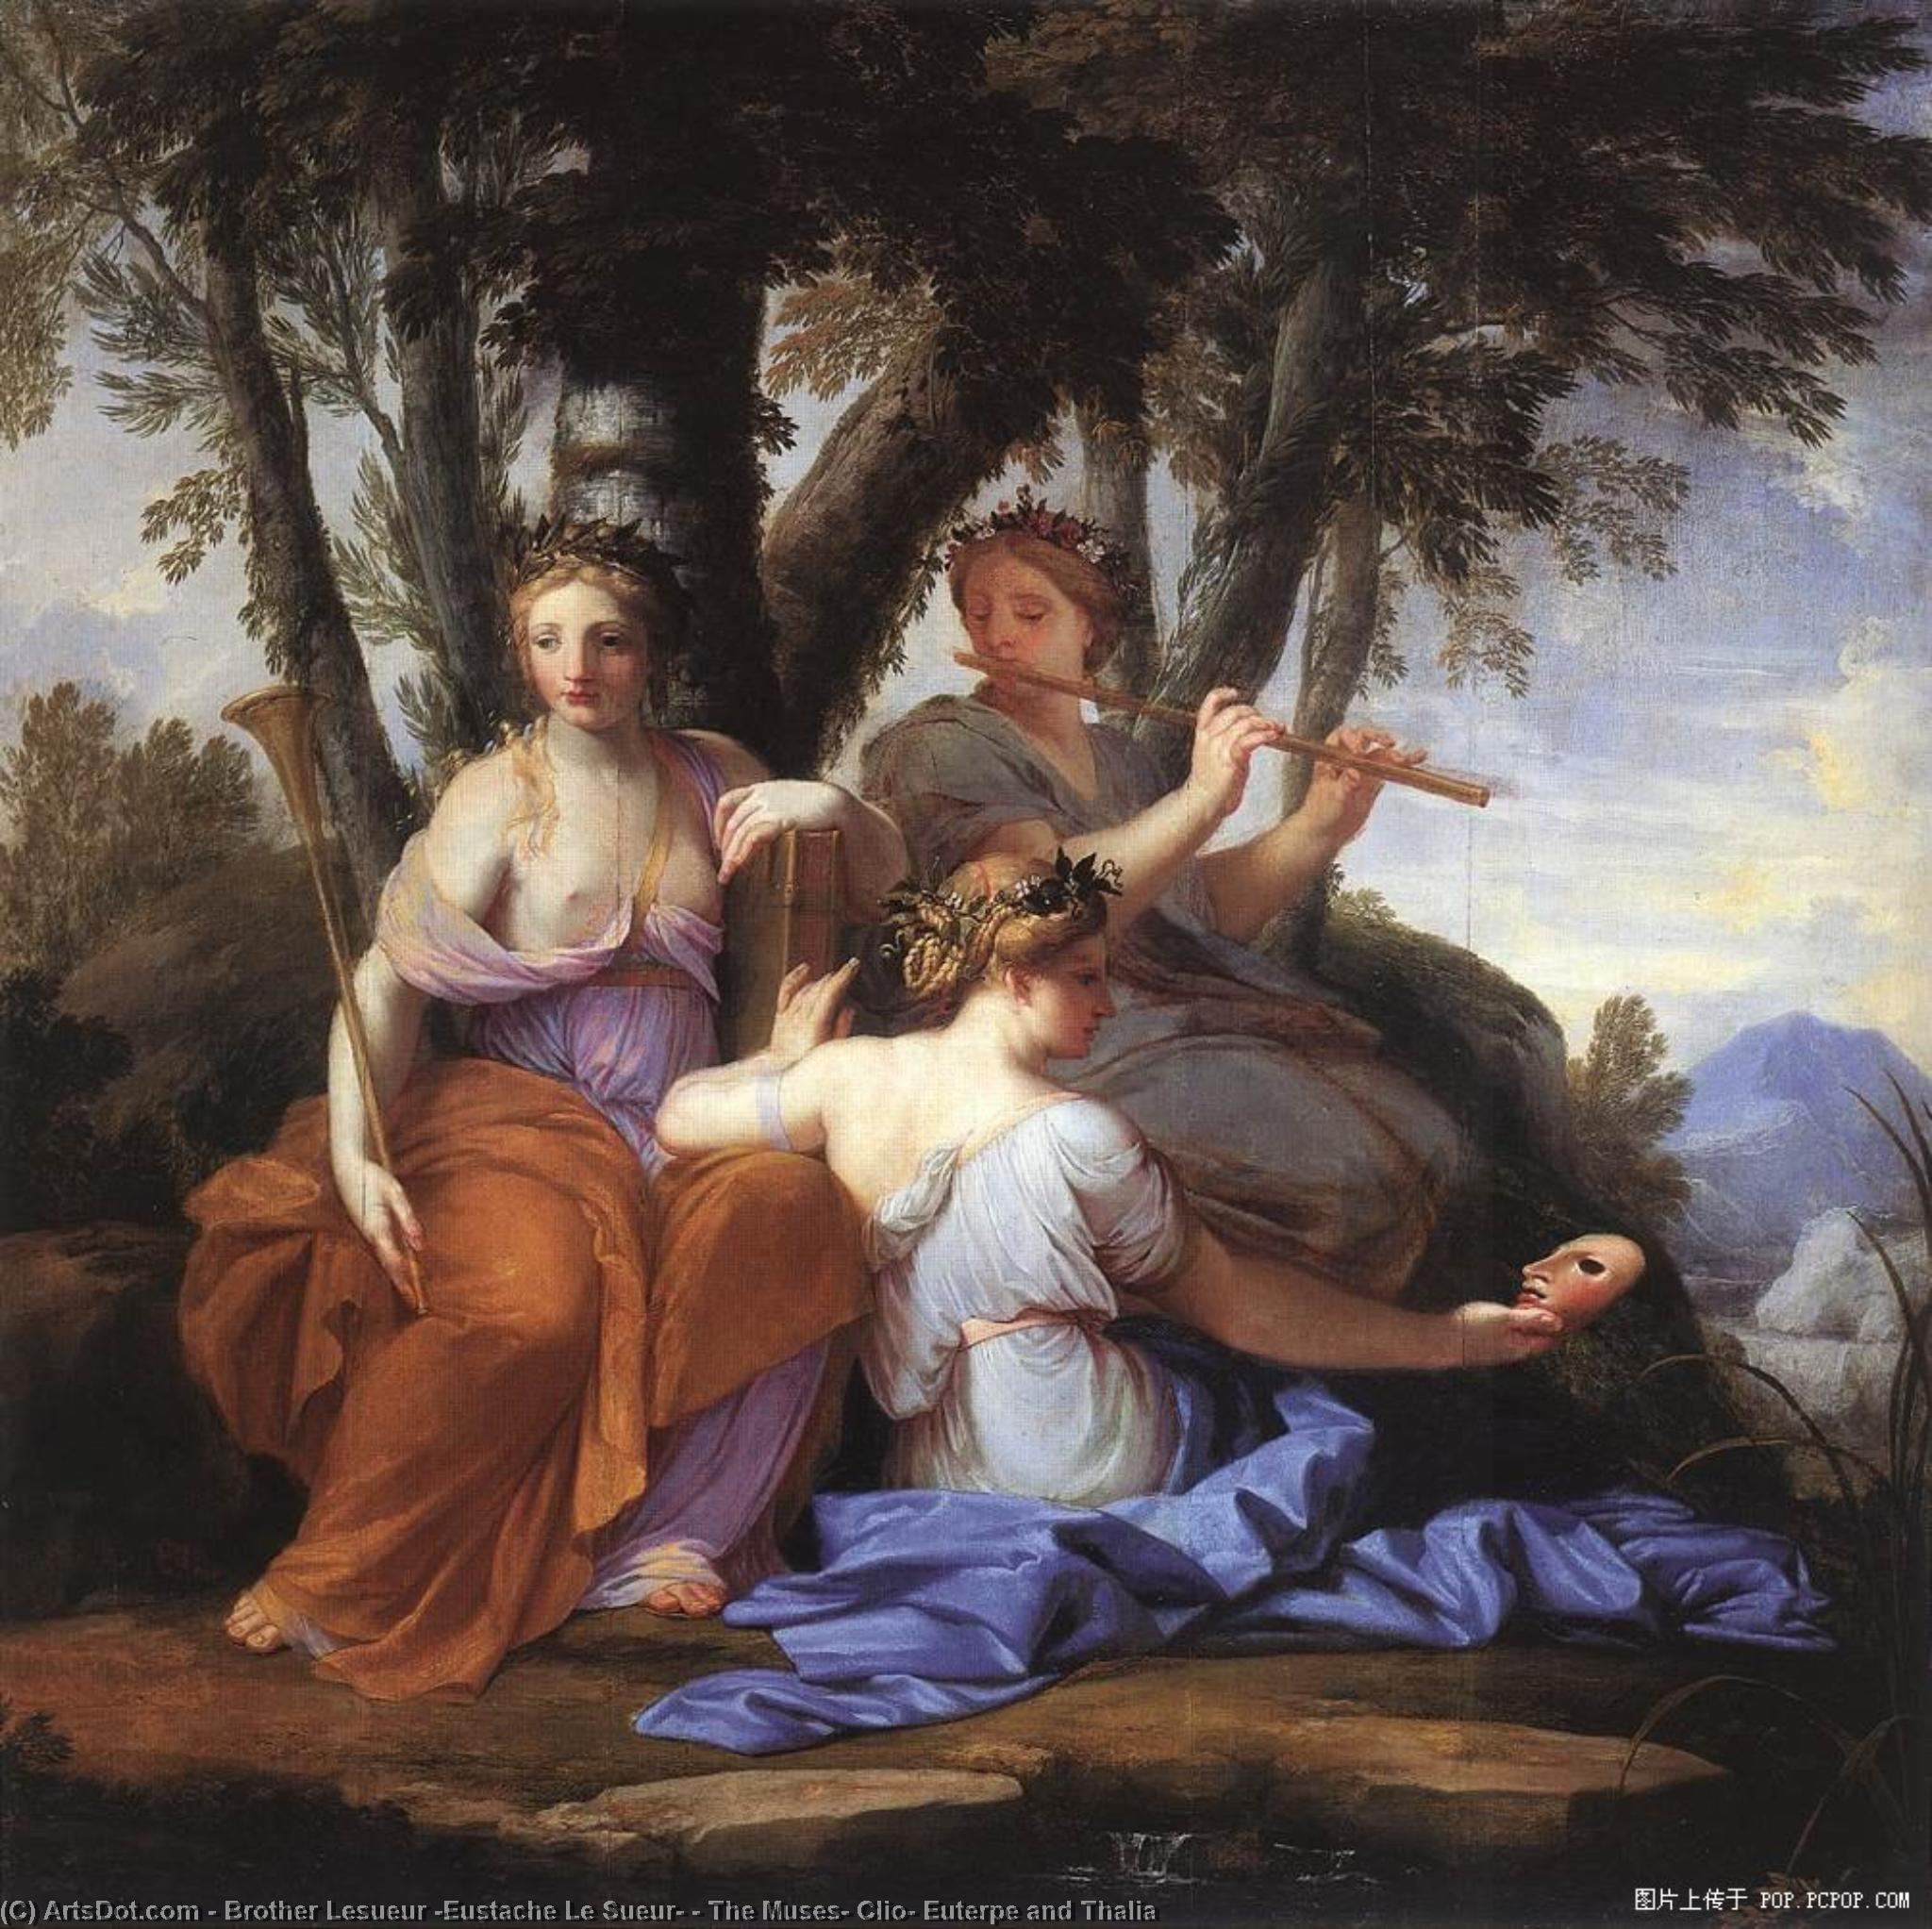 Wikioo.org - The Encyclopedia of Fine Arts - Painting, Artwork by Brother Lesueur (Eustache Le Sueur) - The Muses: Clio, Euterpe and Thalia